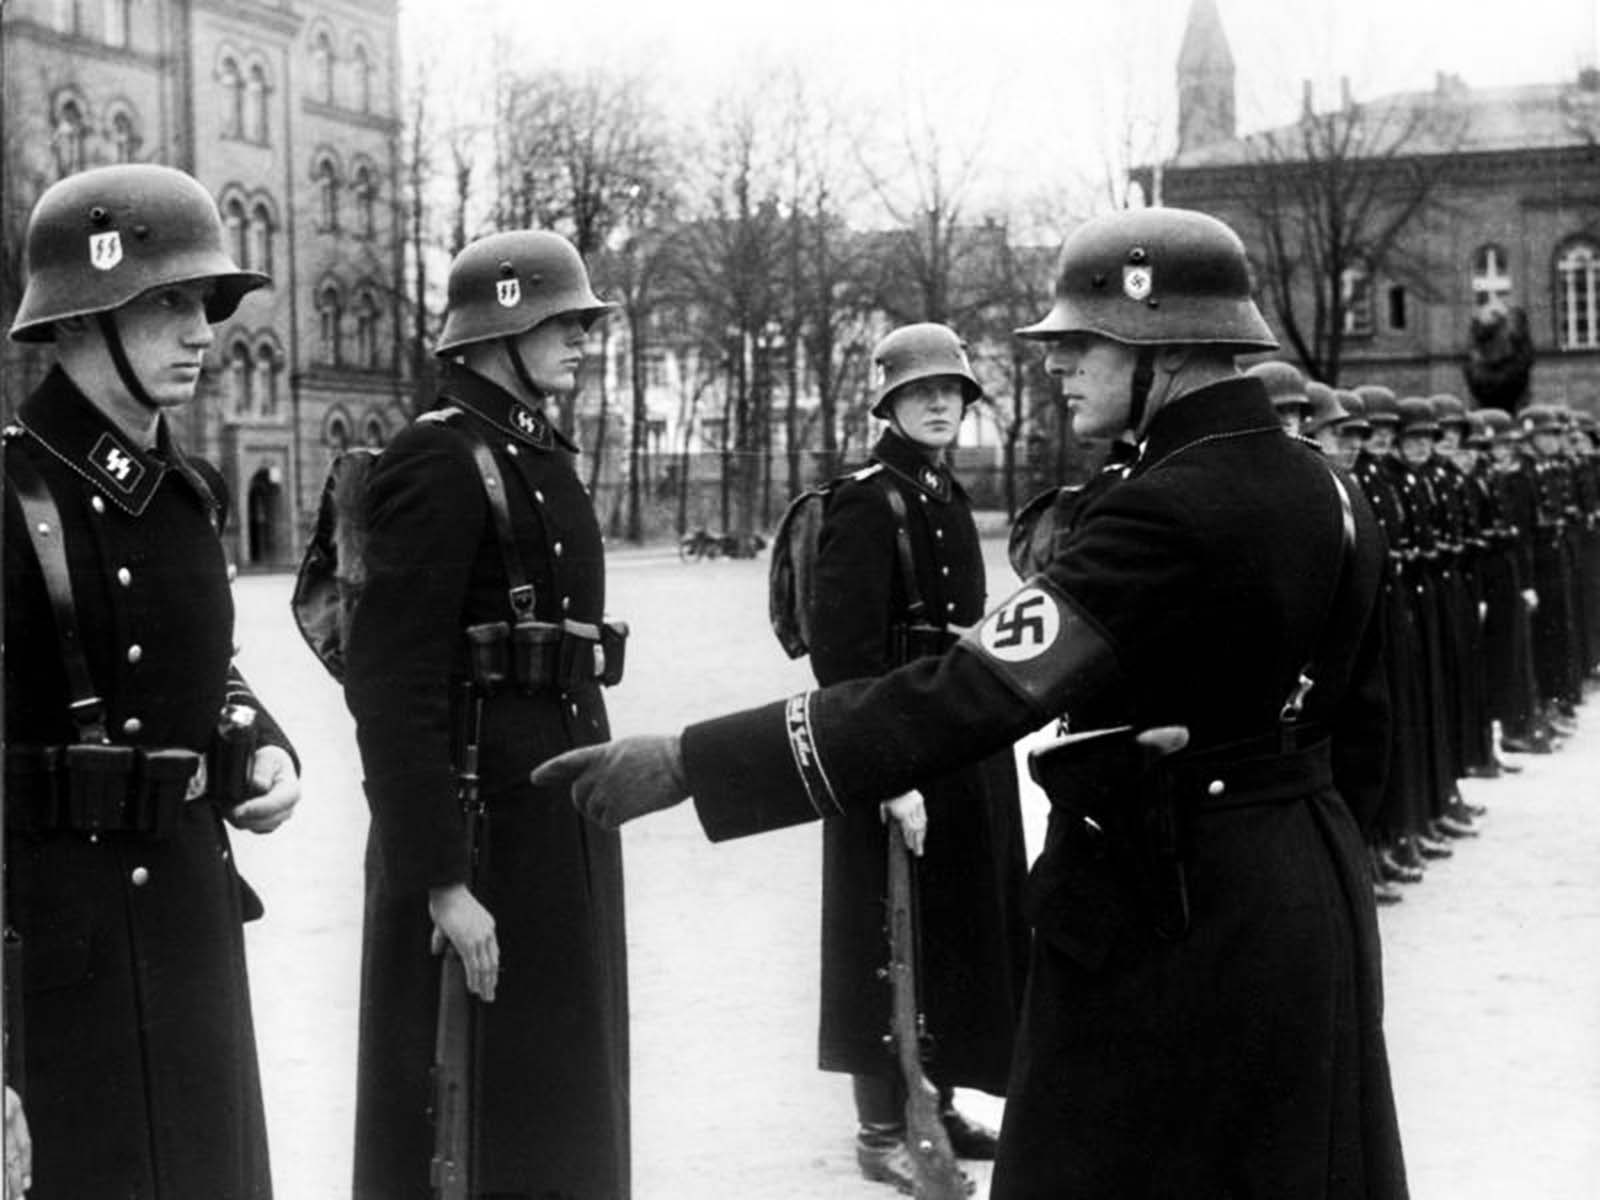 Hitler's personal bodyguard undergo a drill inspection in Berlin, November 1938